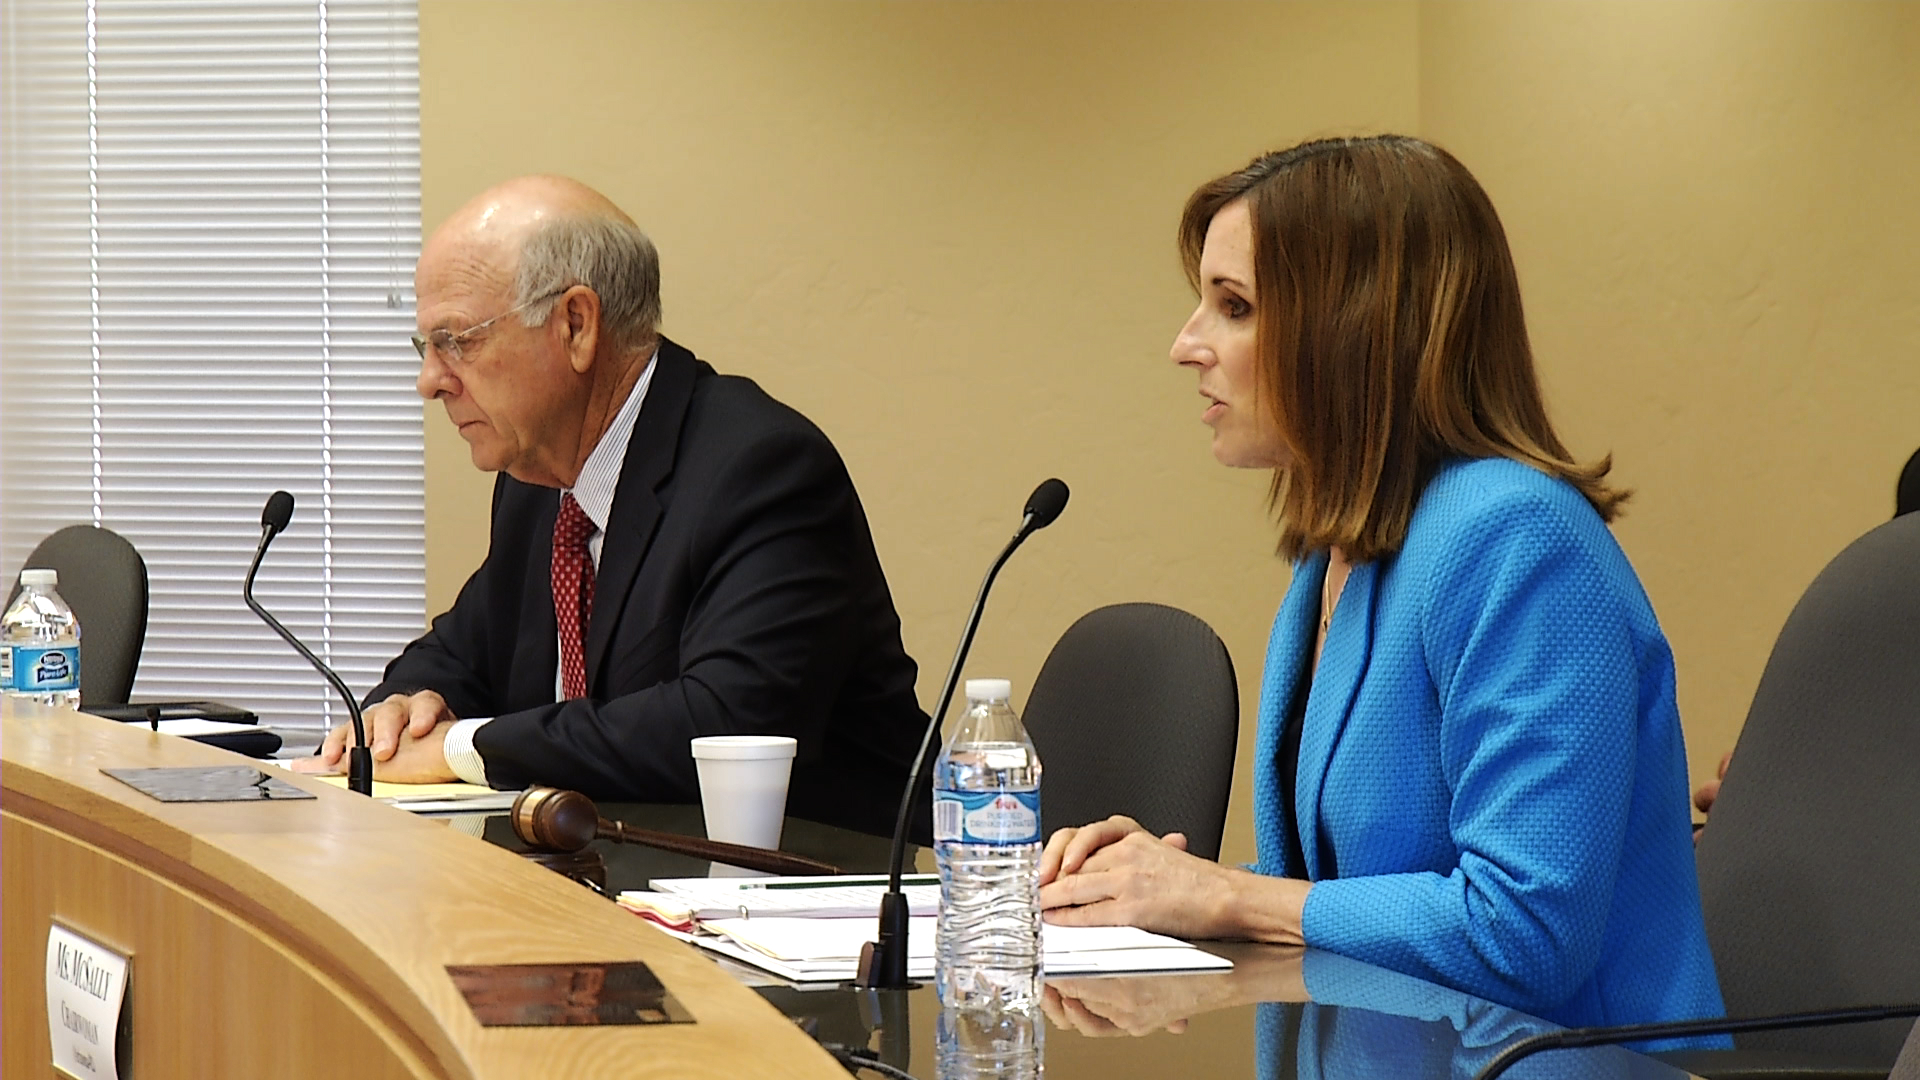 5-9-16 McSally at Hearing